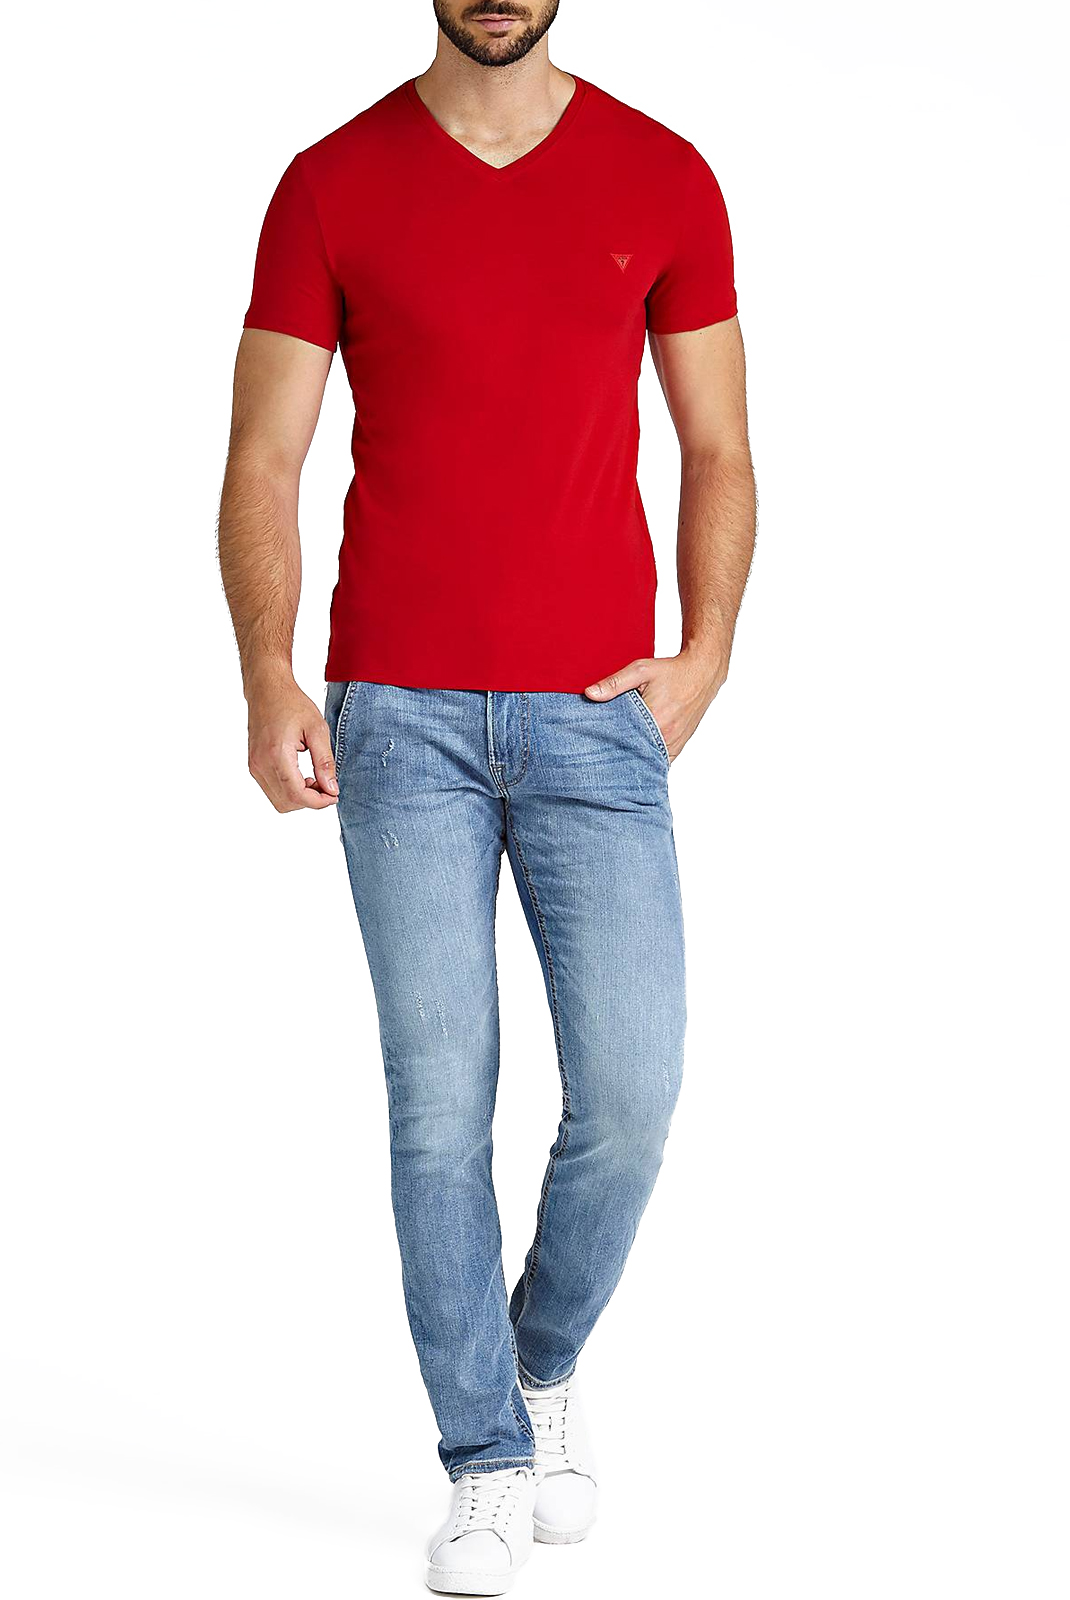 T-S manches courtes  Guess jeans M83I31 J1300 TLRD